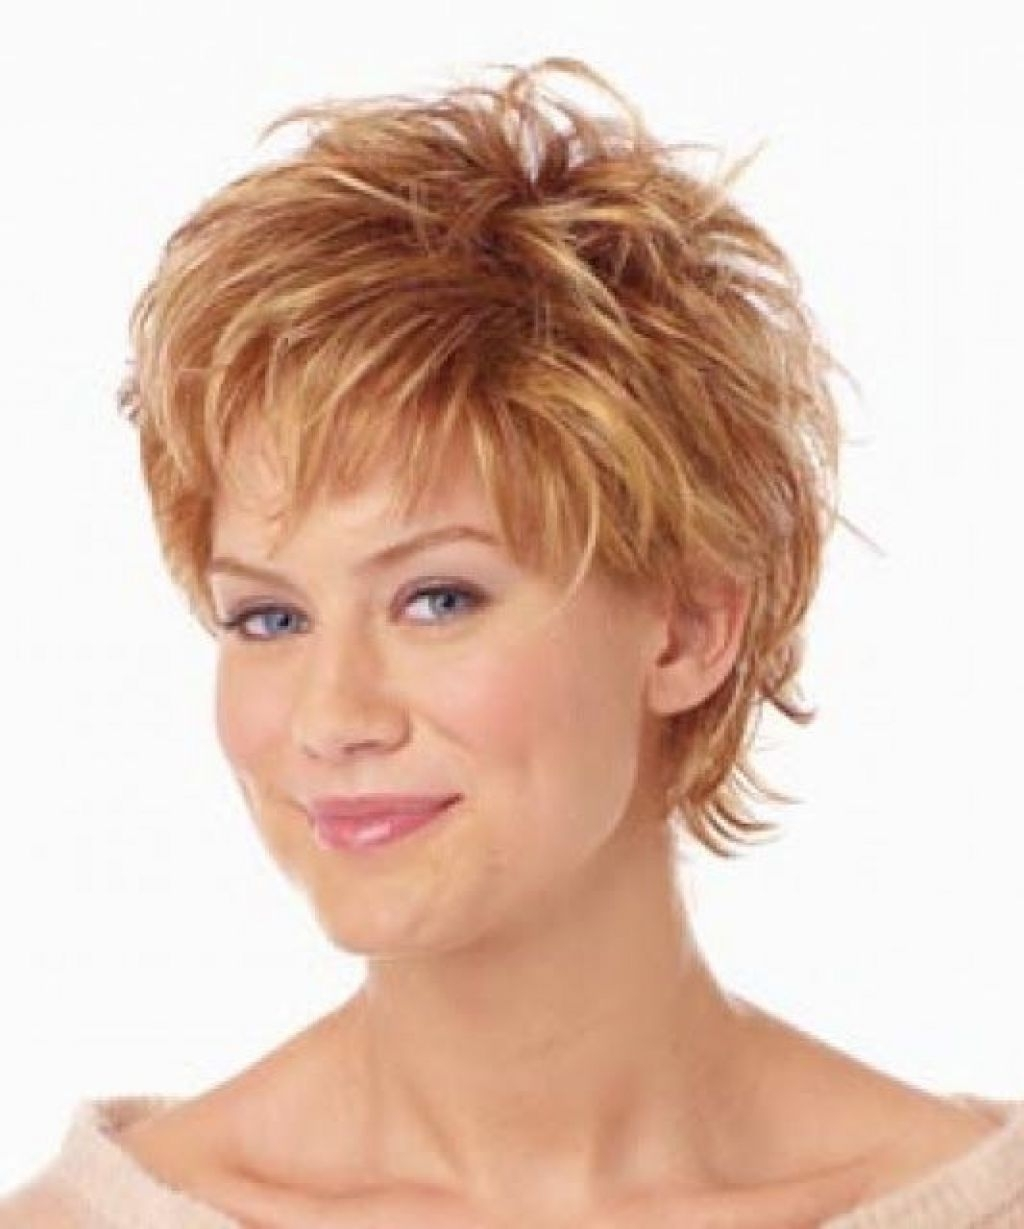 Well Liked Short Shaggy Gray Hairstyles With Regard To Short Curly Gray Hairstyles For Women Over 50 – Google Search (View 15 of 15)